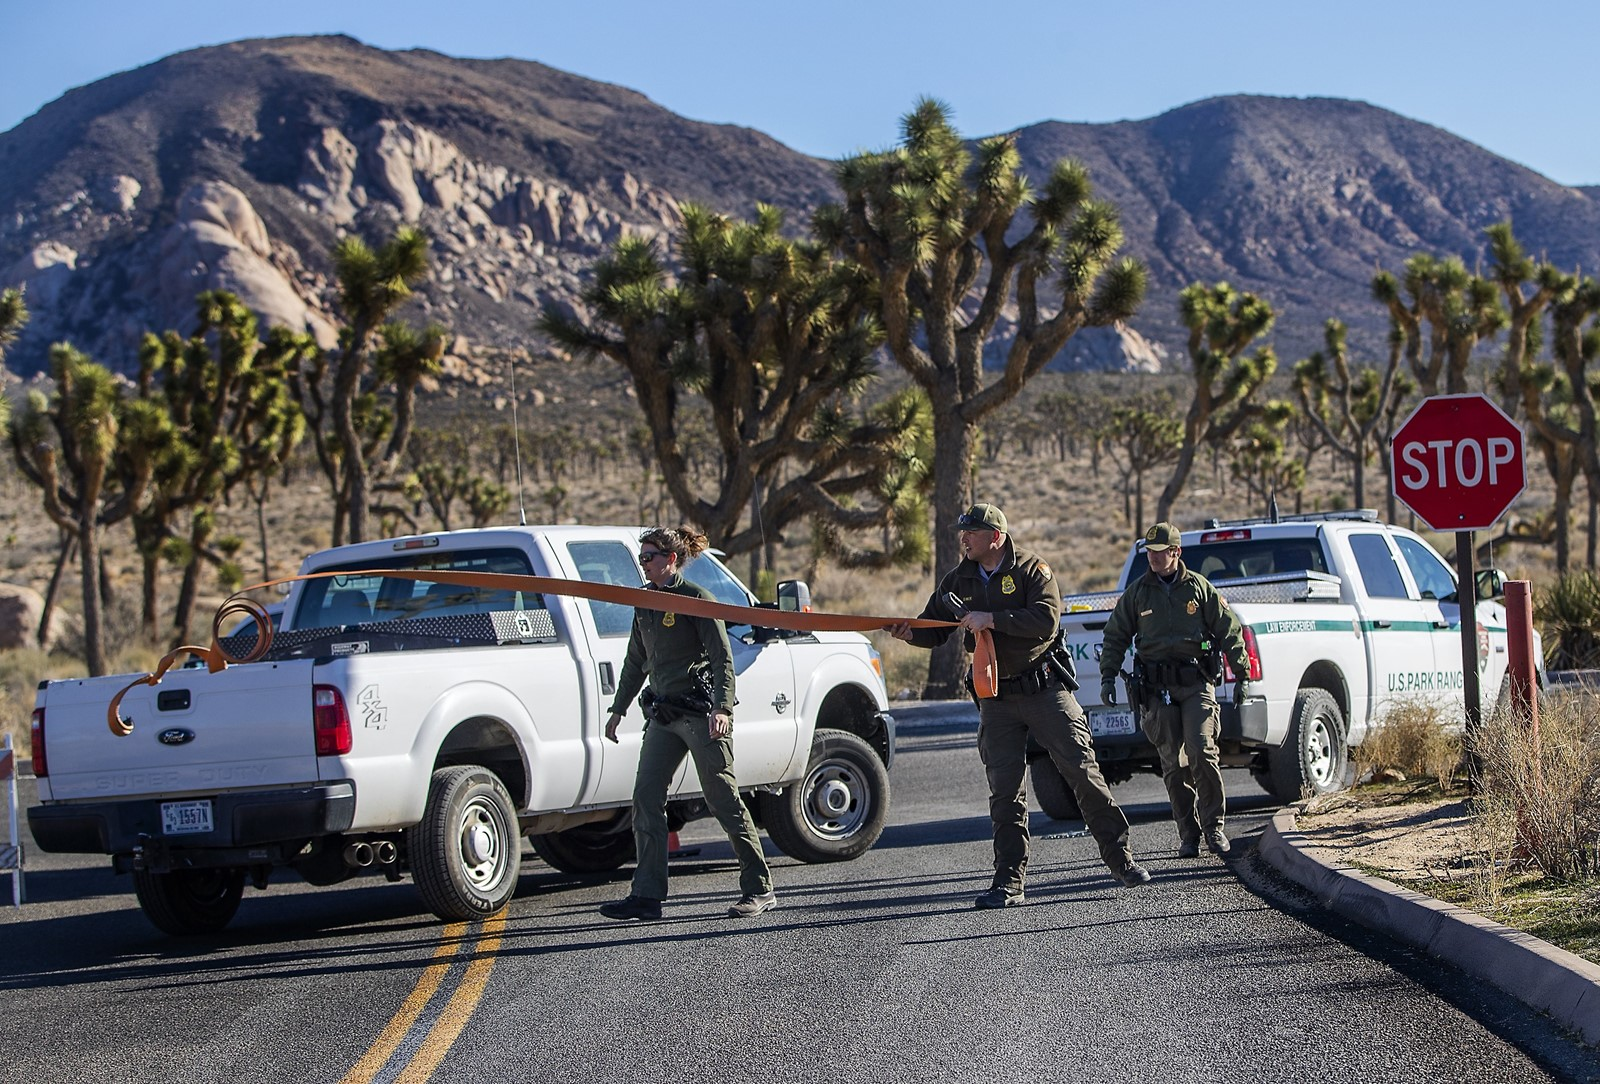 Rangers close off the road to a campground at Joshua Tree National Park. All of its campgrounds were closed at noon on Wednesday because the government shutdown prevented routine cleanup and maintenance. — Photograph: Gina Ferazzi/Los Angeles Times.